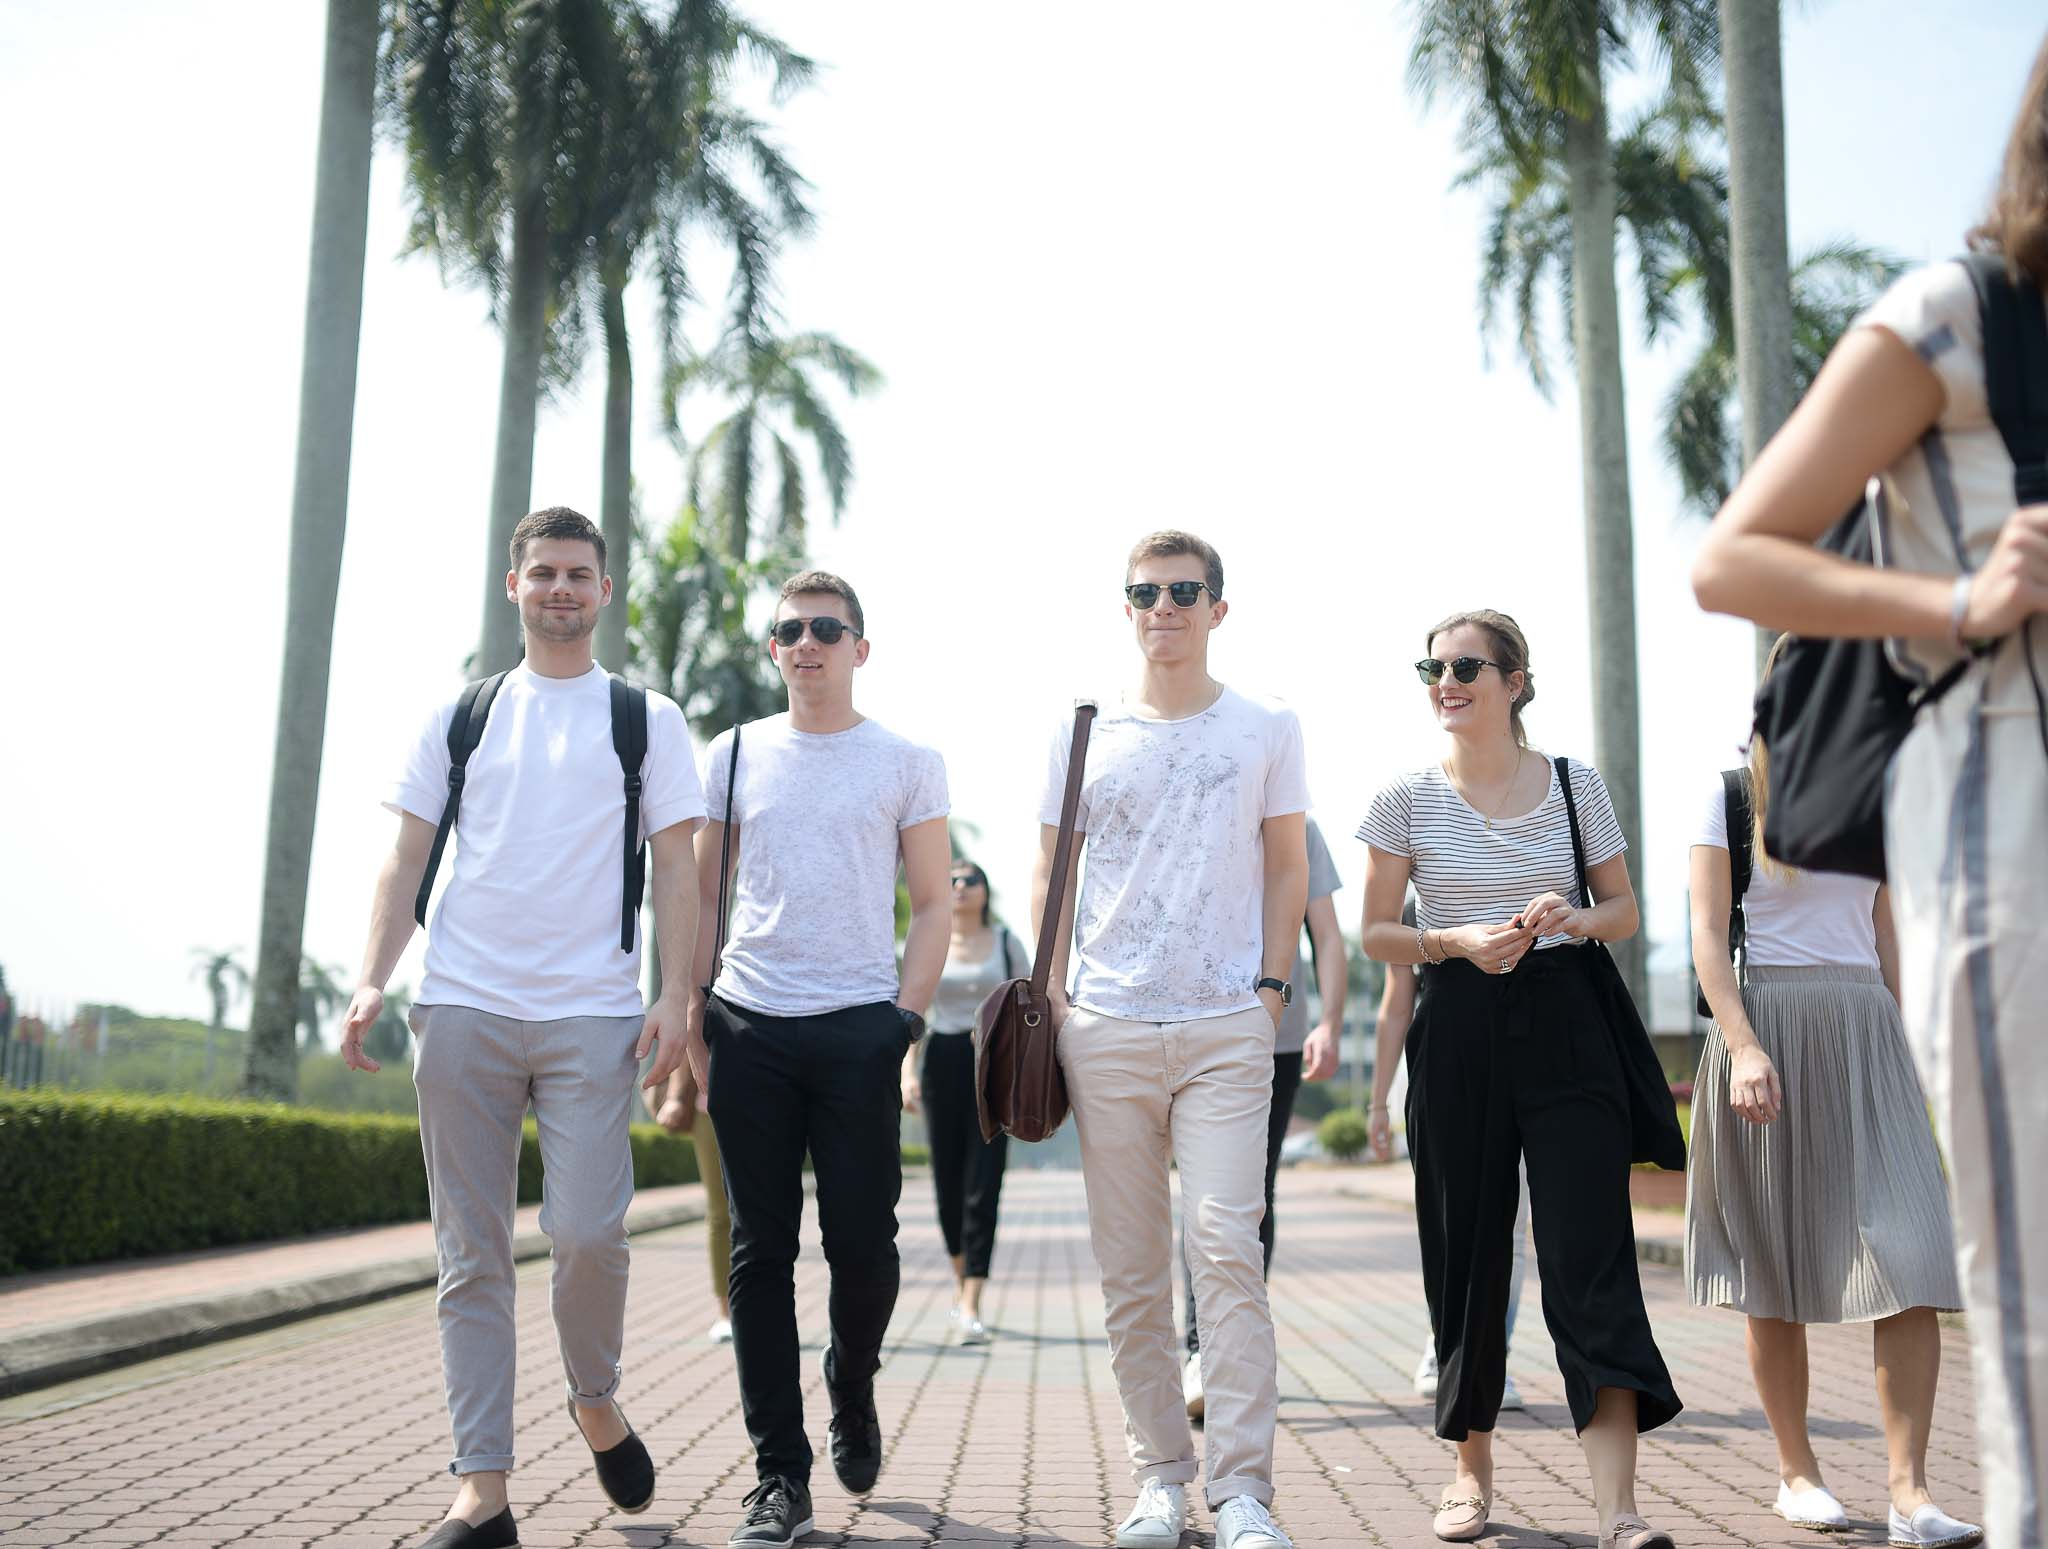 students walking together at the campus os UPM in Kuala Lumpur